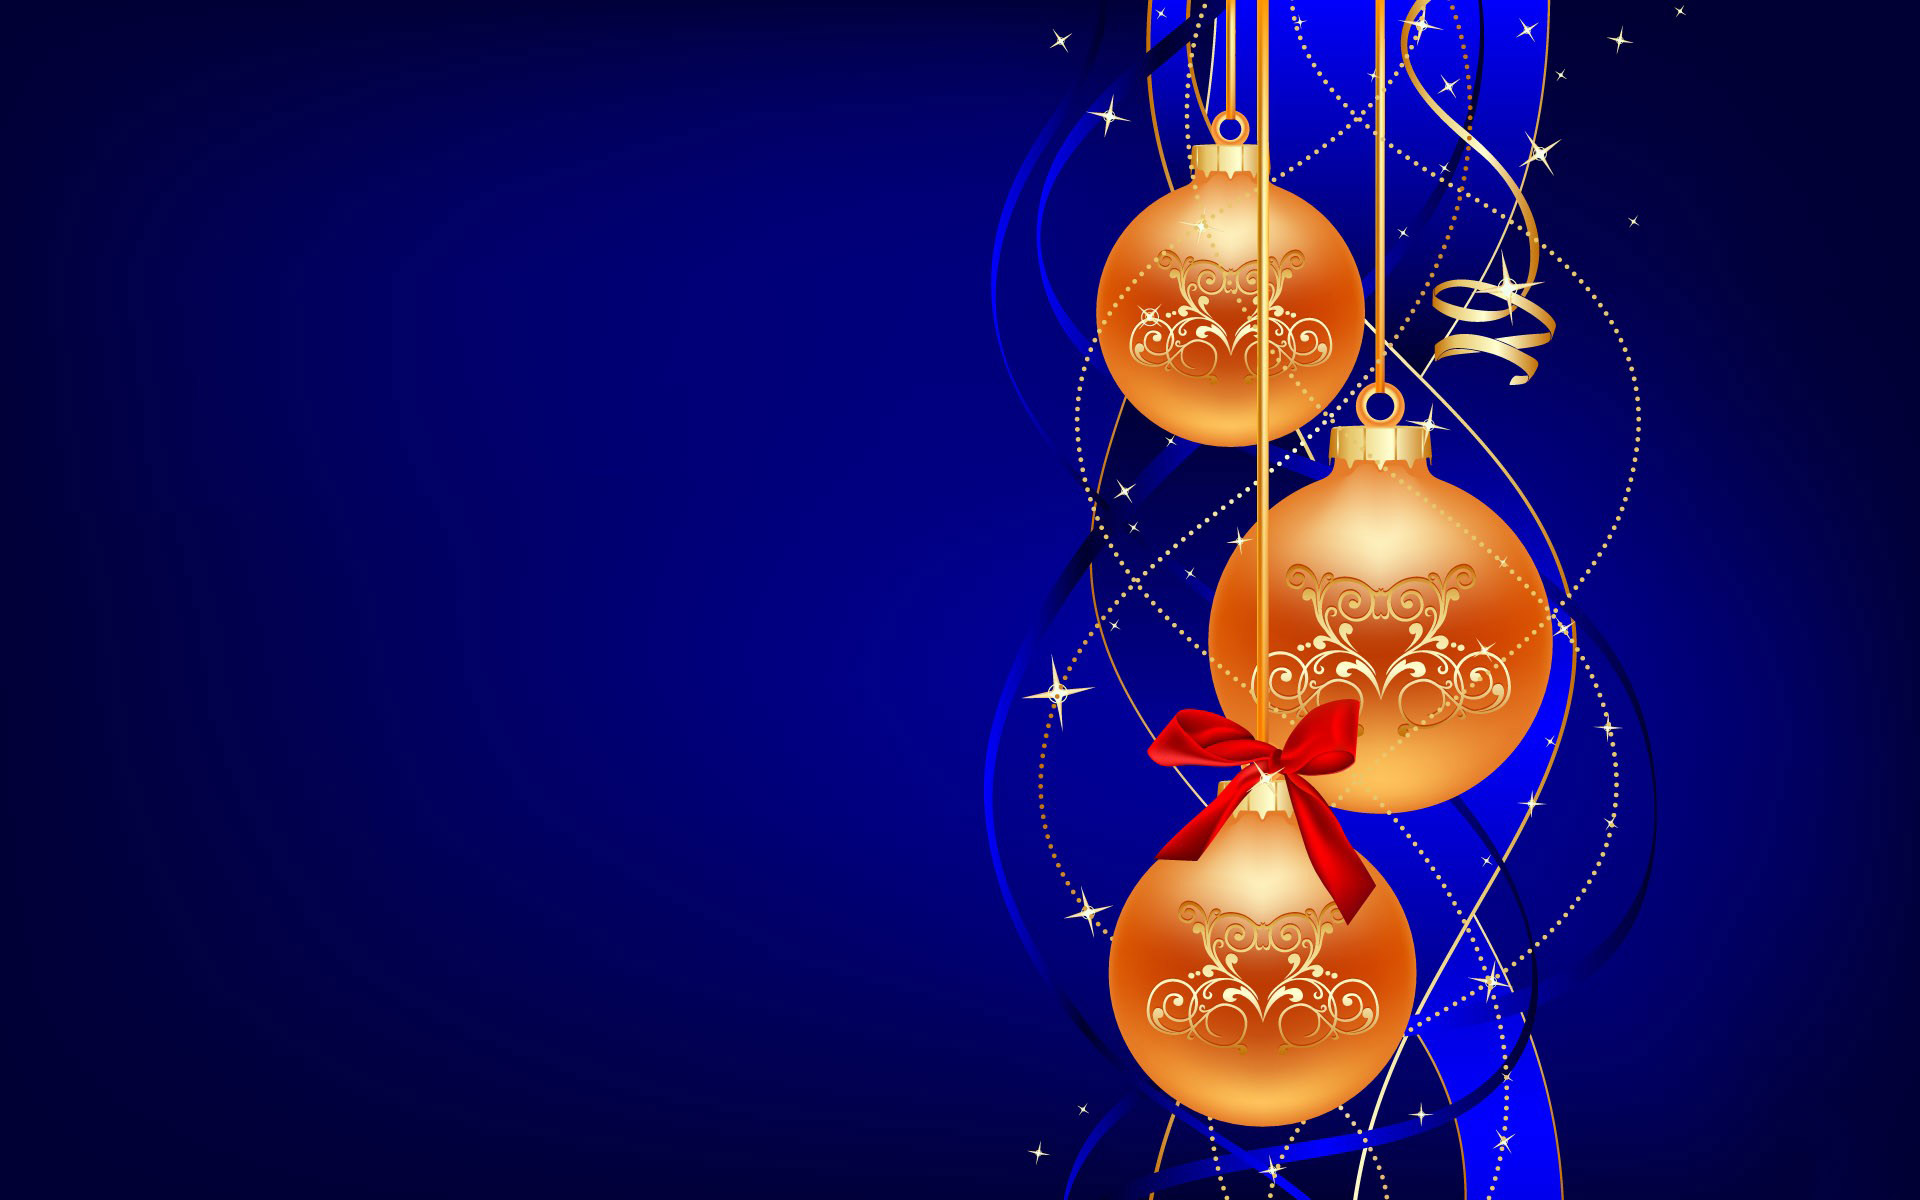 Desktop hd Wallpaper in high resolution for free. Get Merry Christmas ...